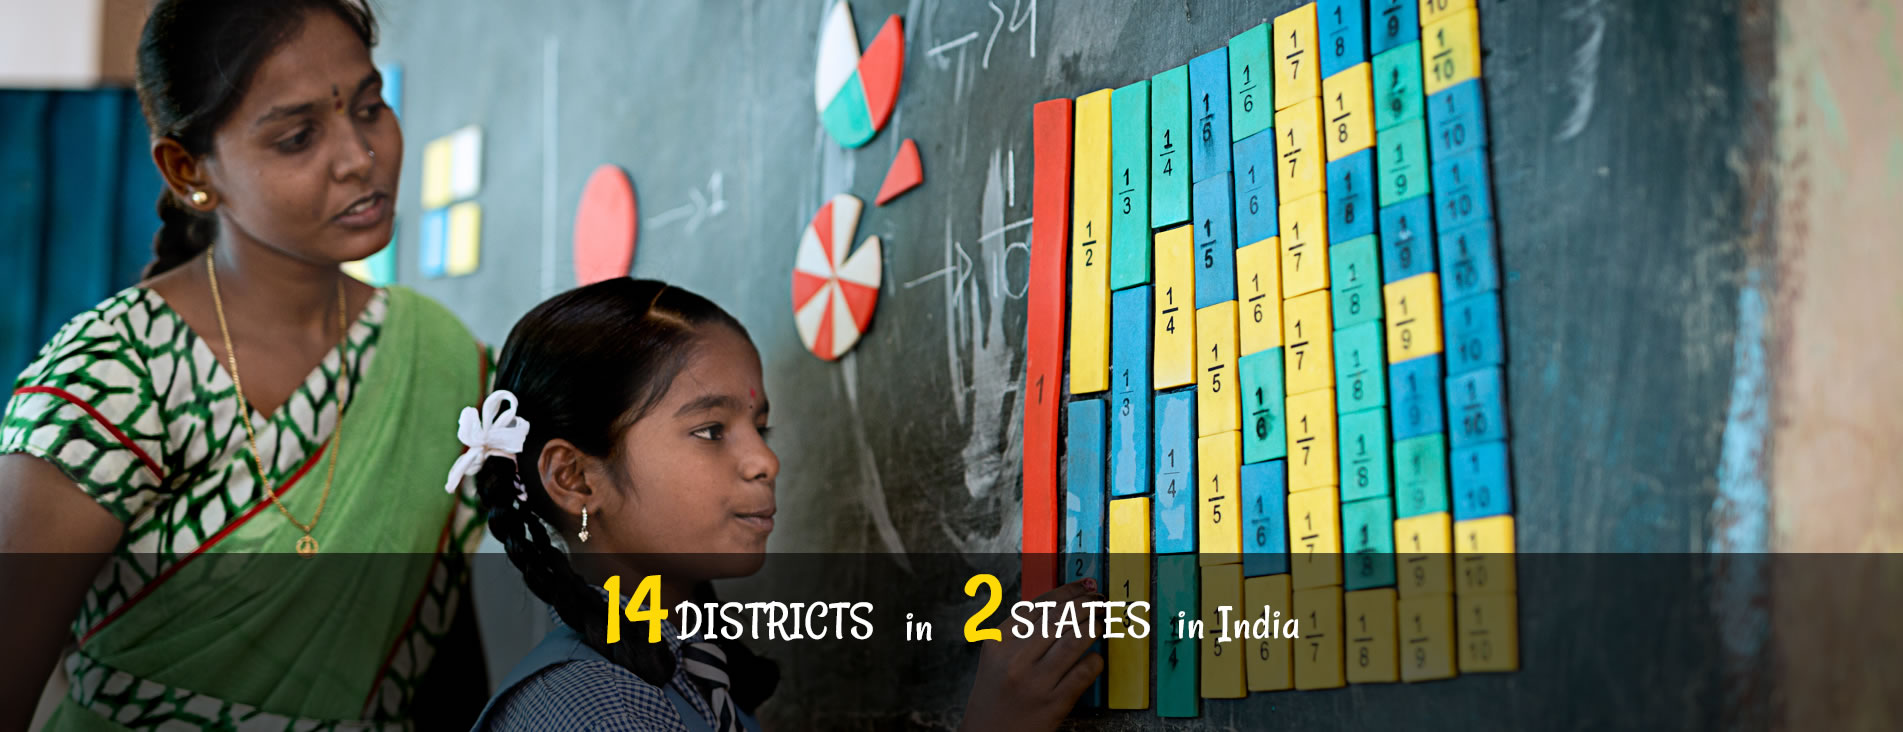 14 districts in 2 States in India